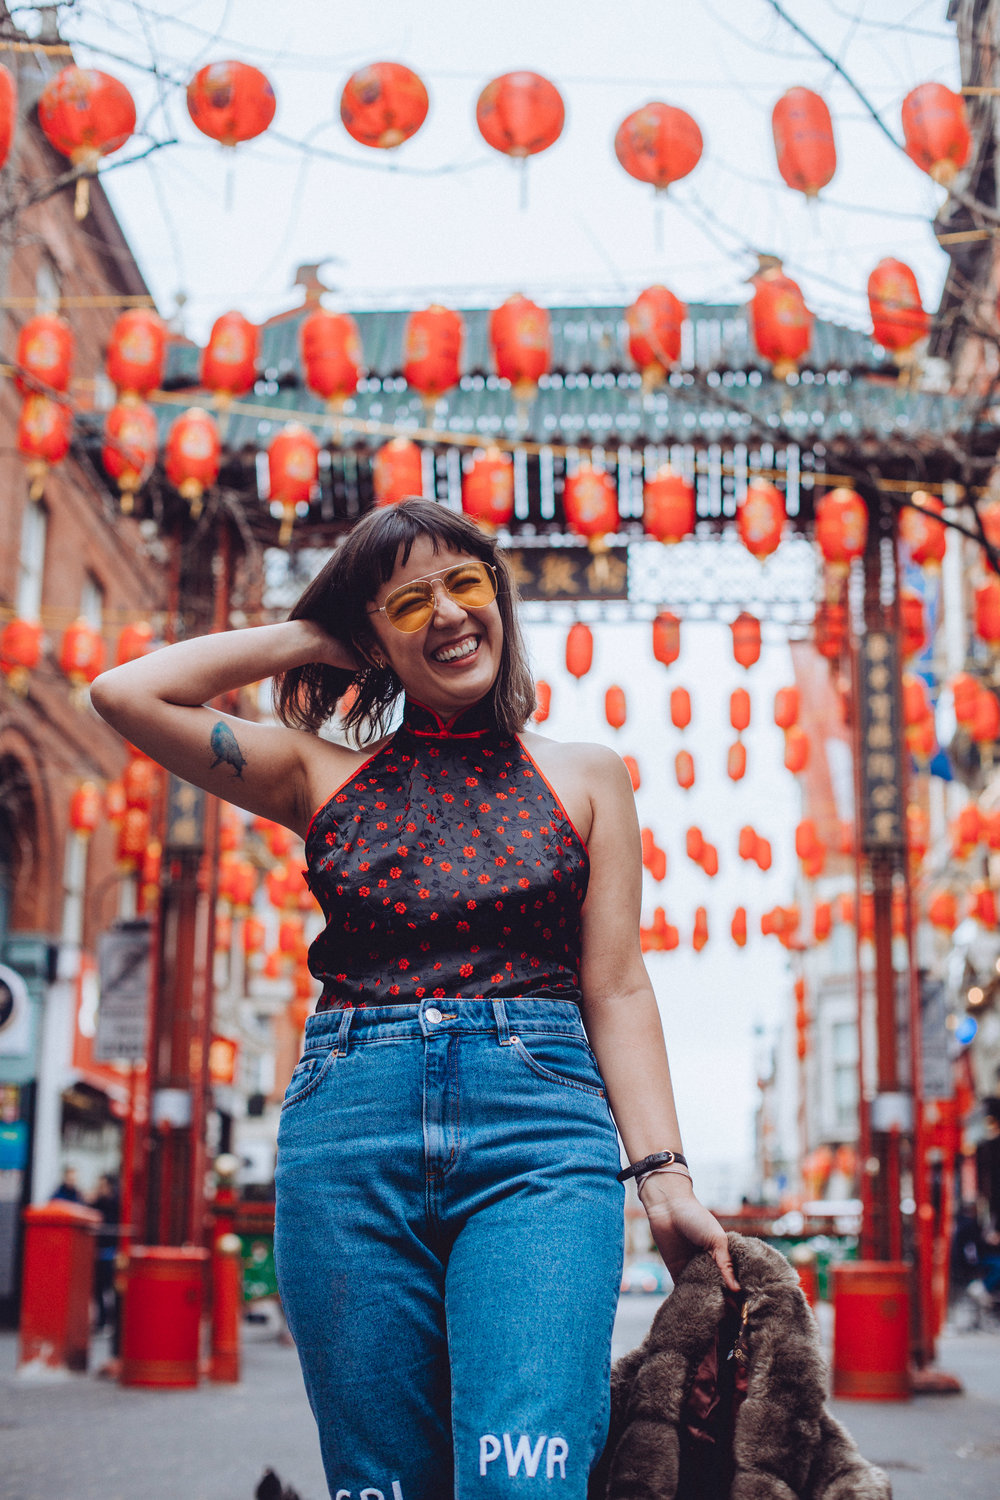 Want more Chinese New Year inspiration? - Check out my last Chinese New Year outfitpost, where I dodged tourists and froze to death in a backless qipao.